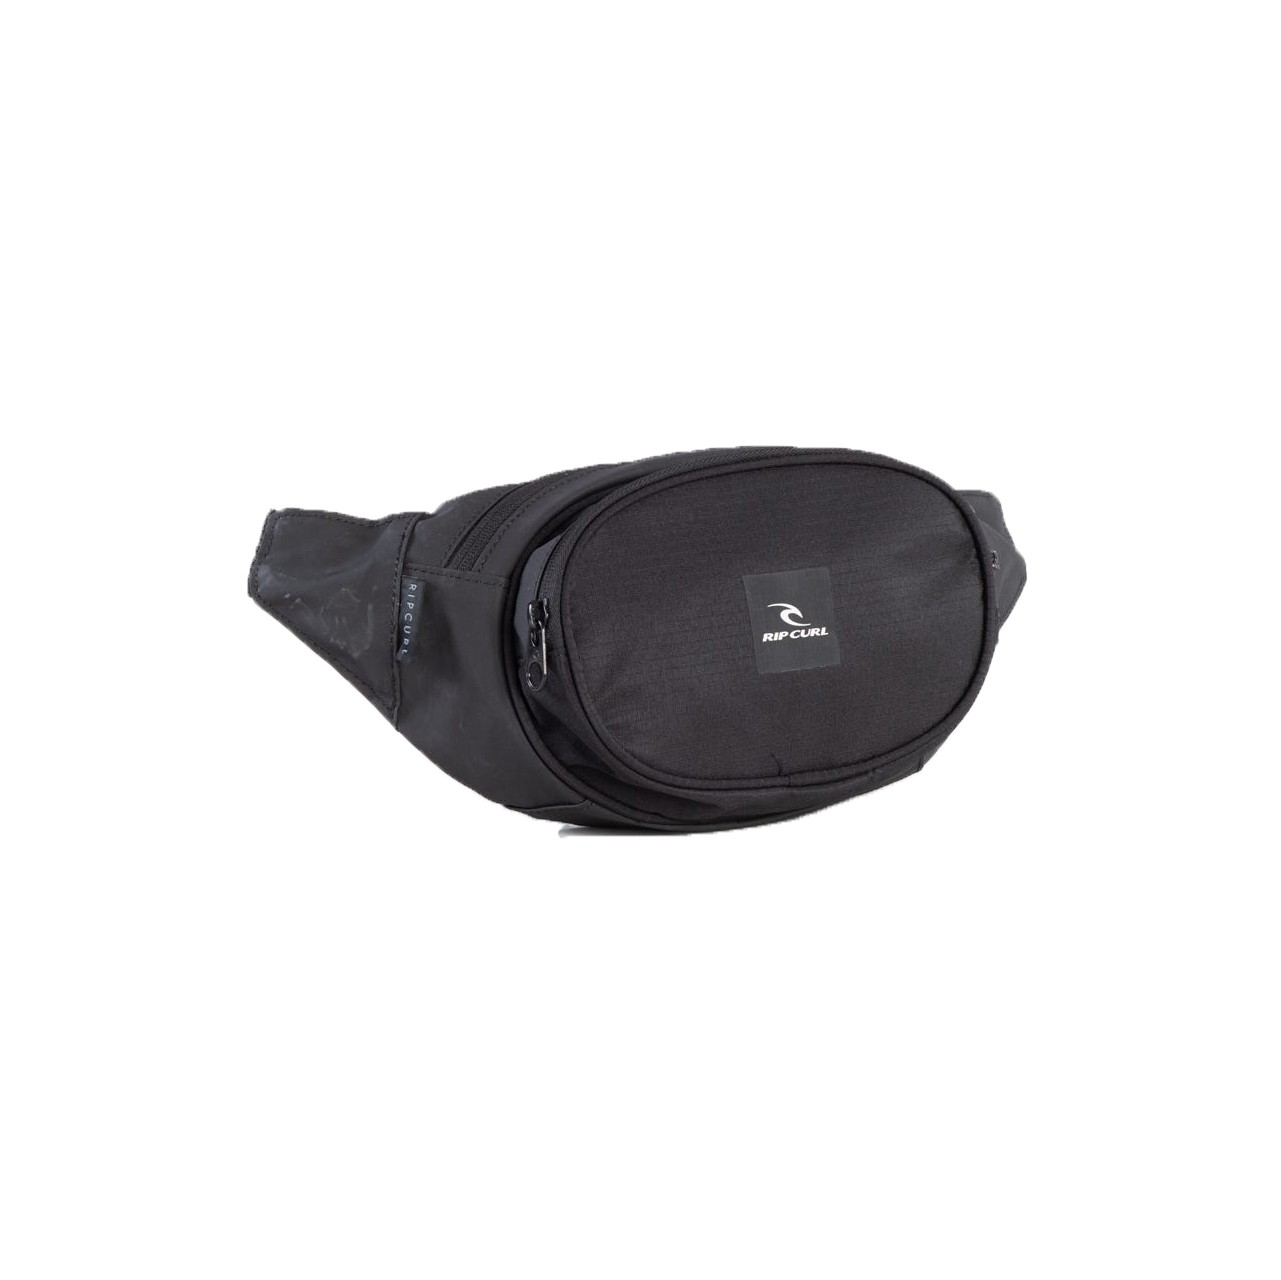 Pochete Rip Curl Waist Bag Midnight 2 Midnight